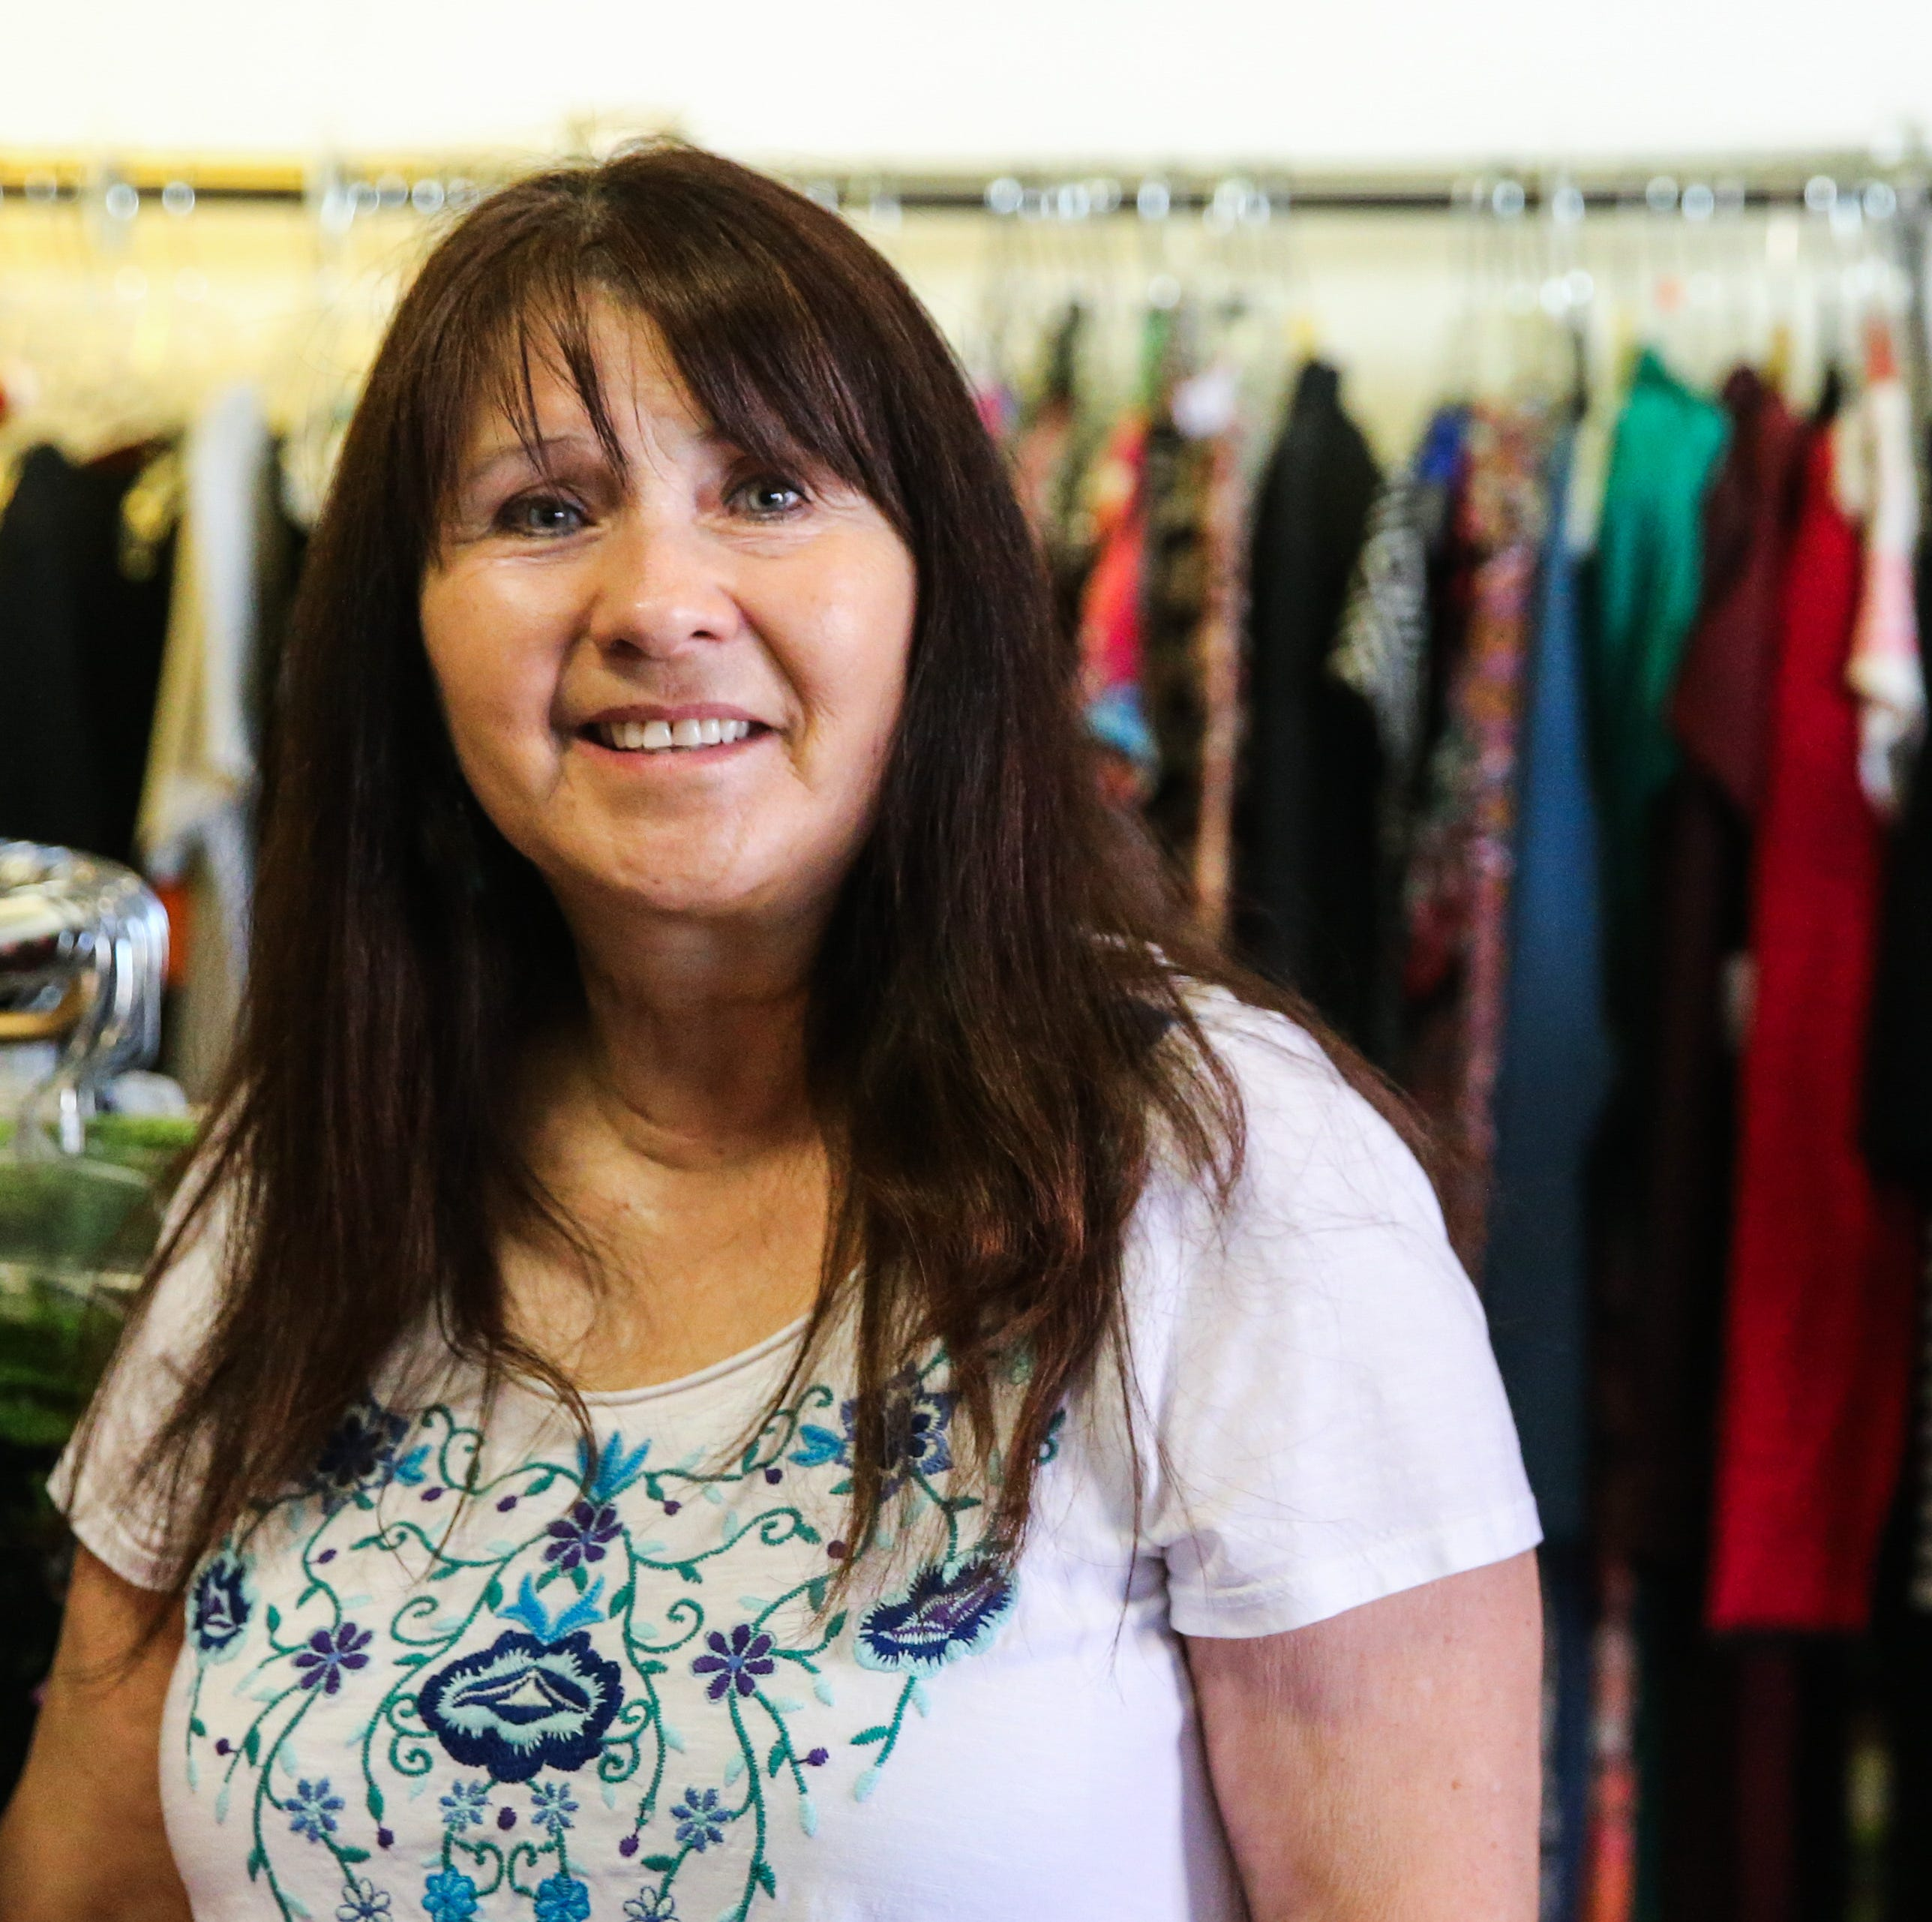 San Angelo consignment shop offers nearly new women's items